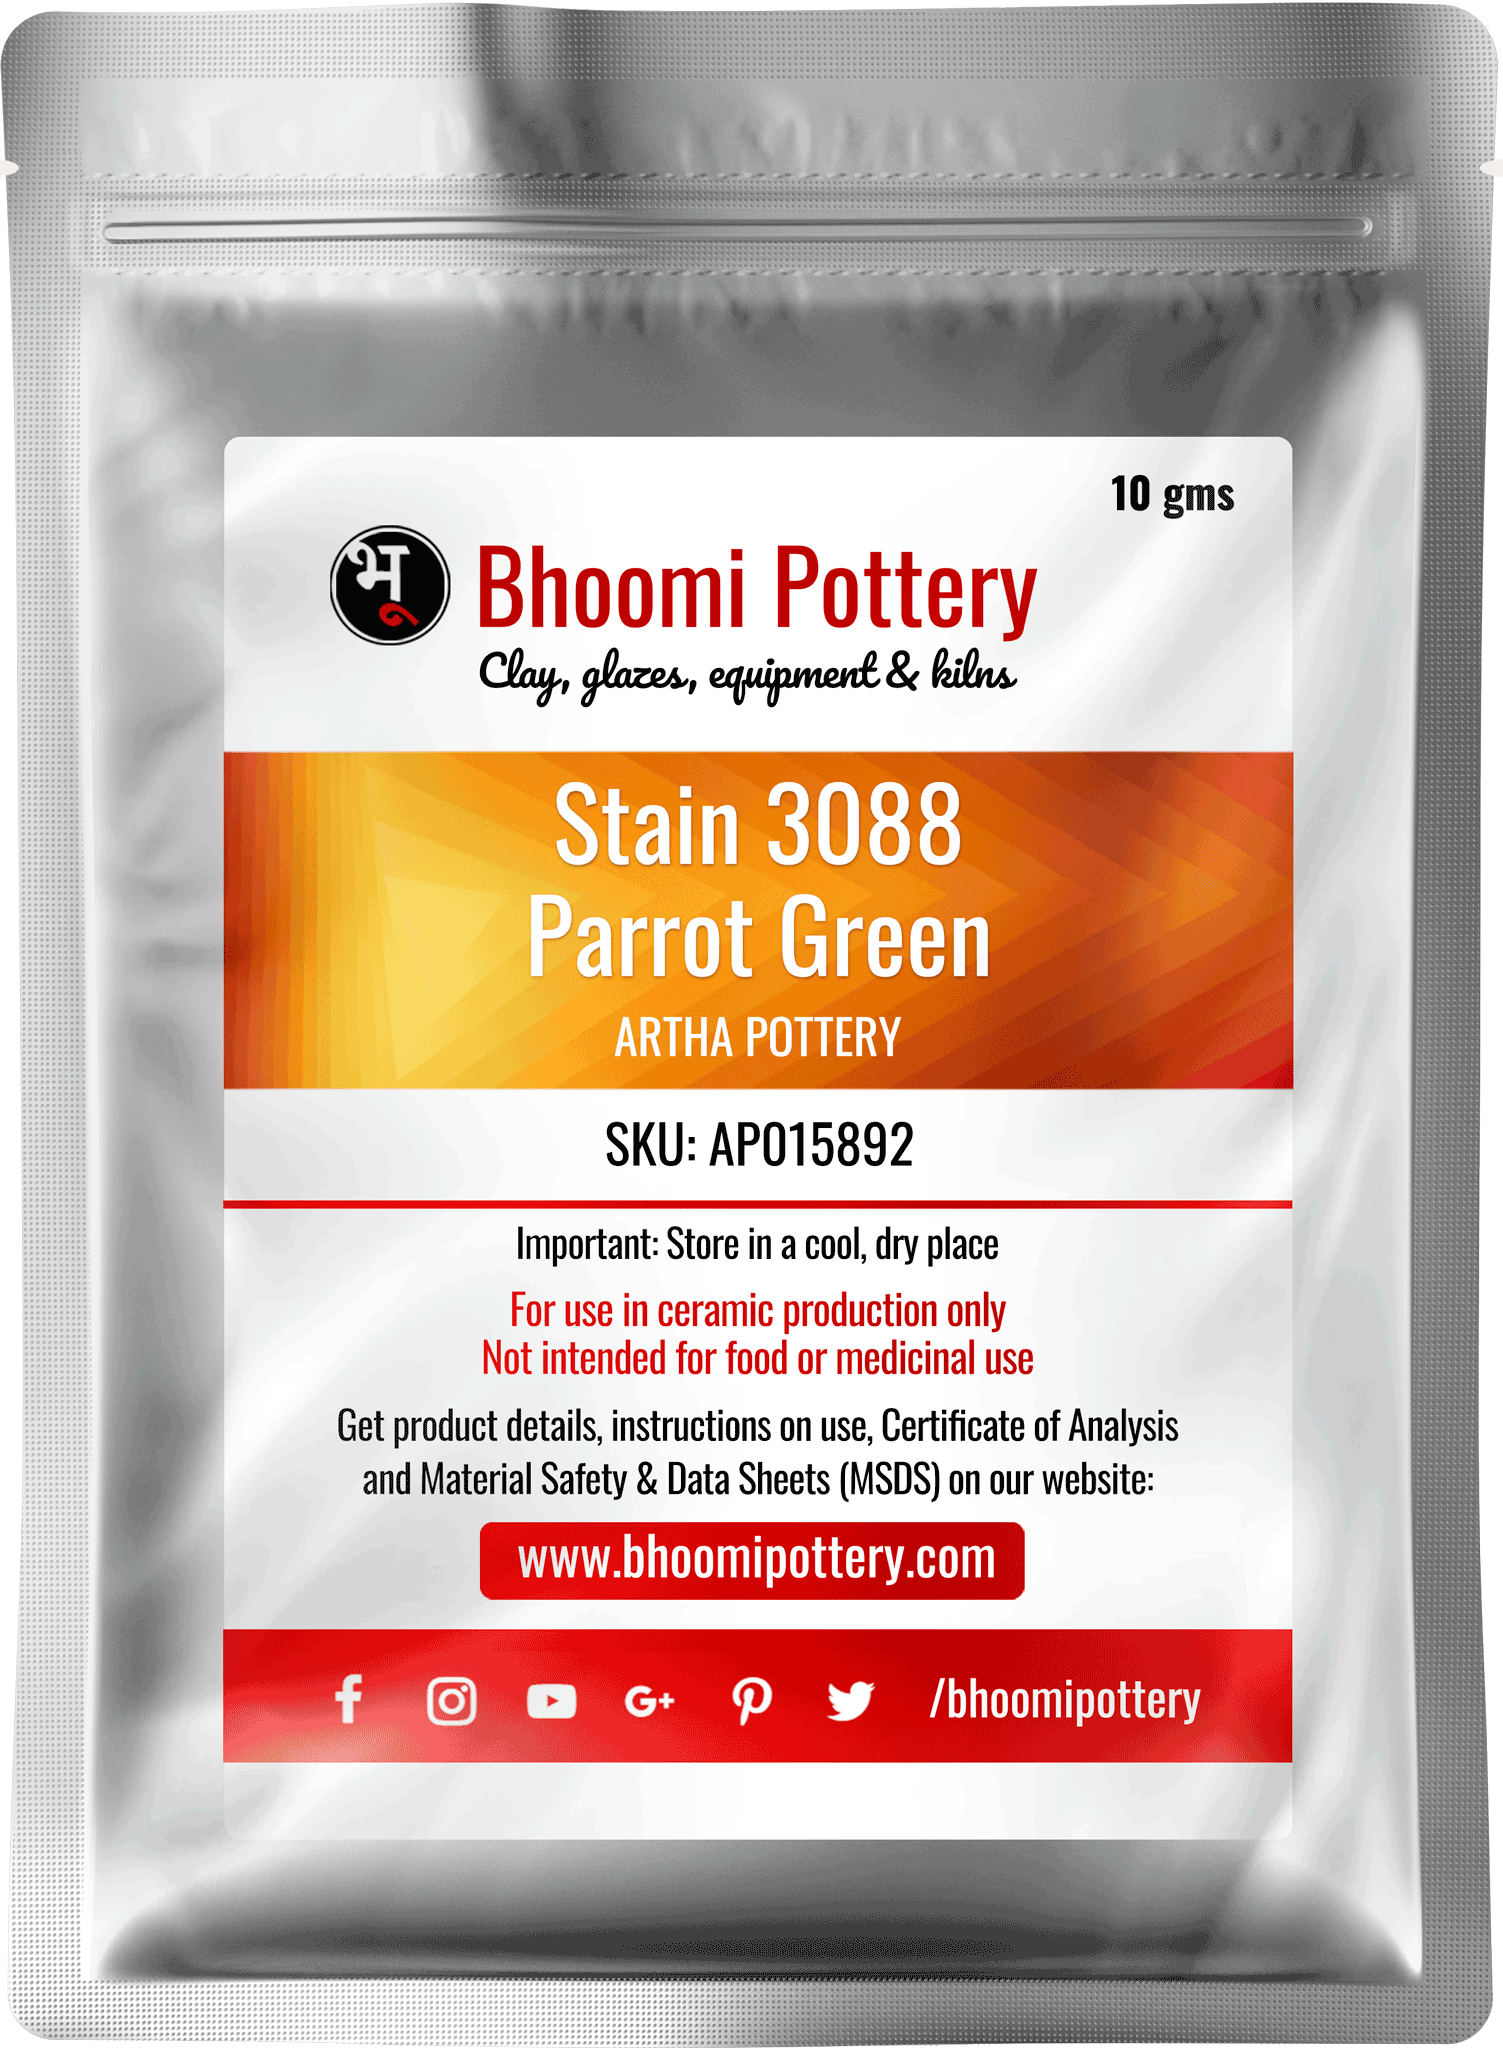 Artha Pottery Stain 3088 Parrot Green 100 gms for sale in India - Bhoomi Pottery